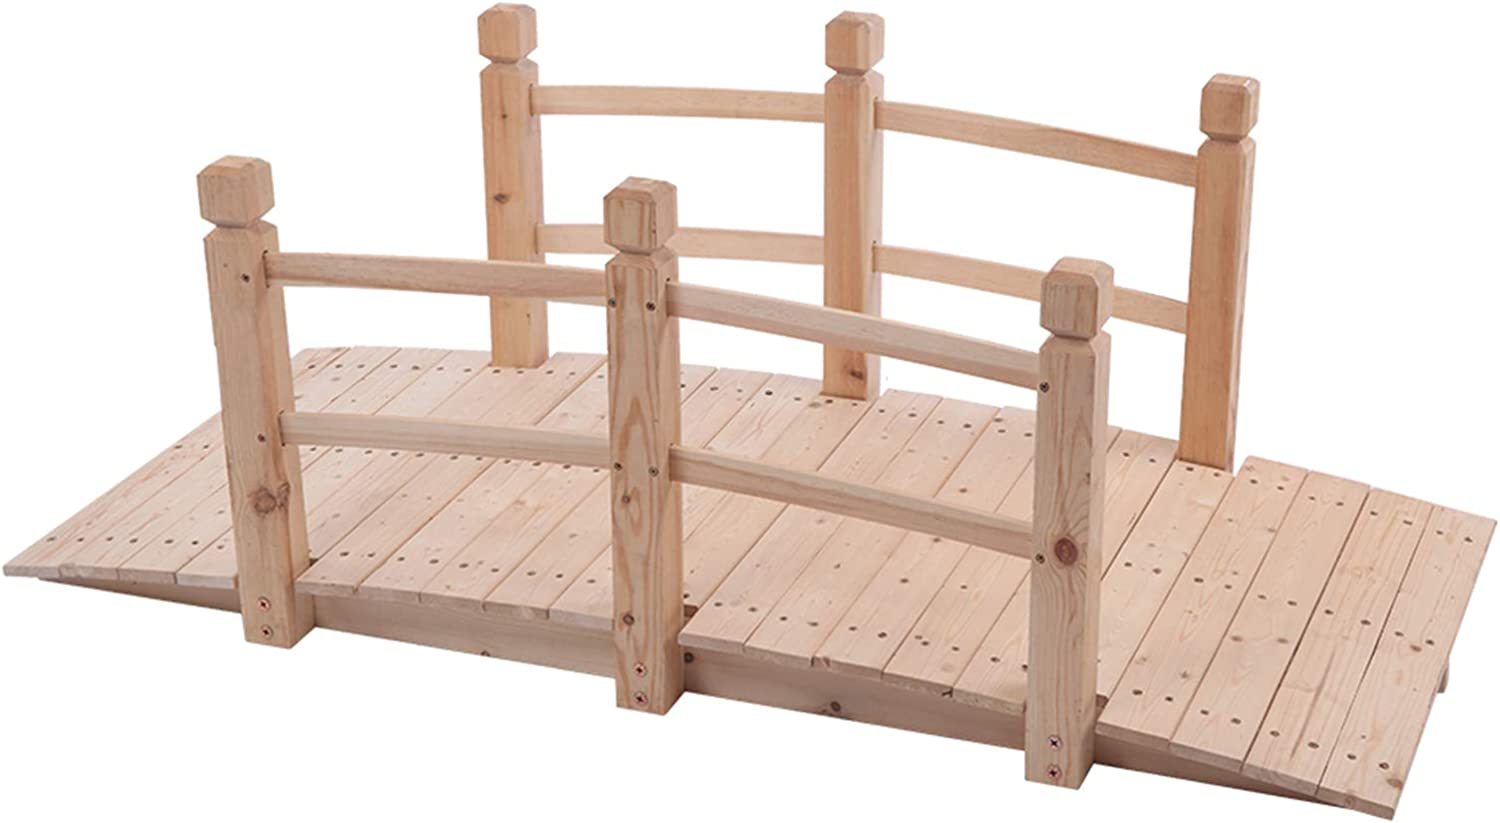 Trlec gt4-ly and Durable Arch Small Special Some reservation Campaign Wooden Courtya Bridge